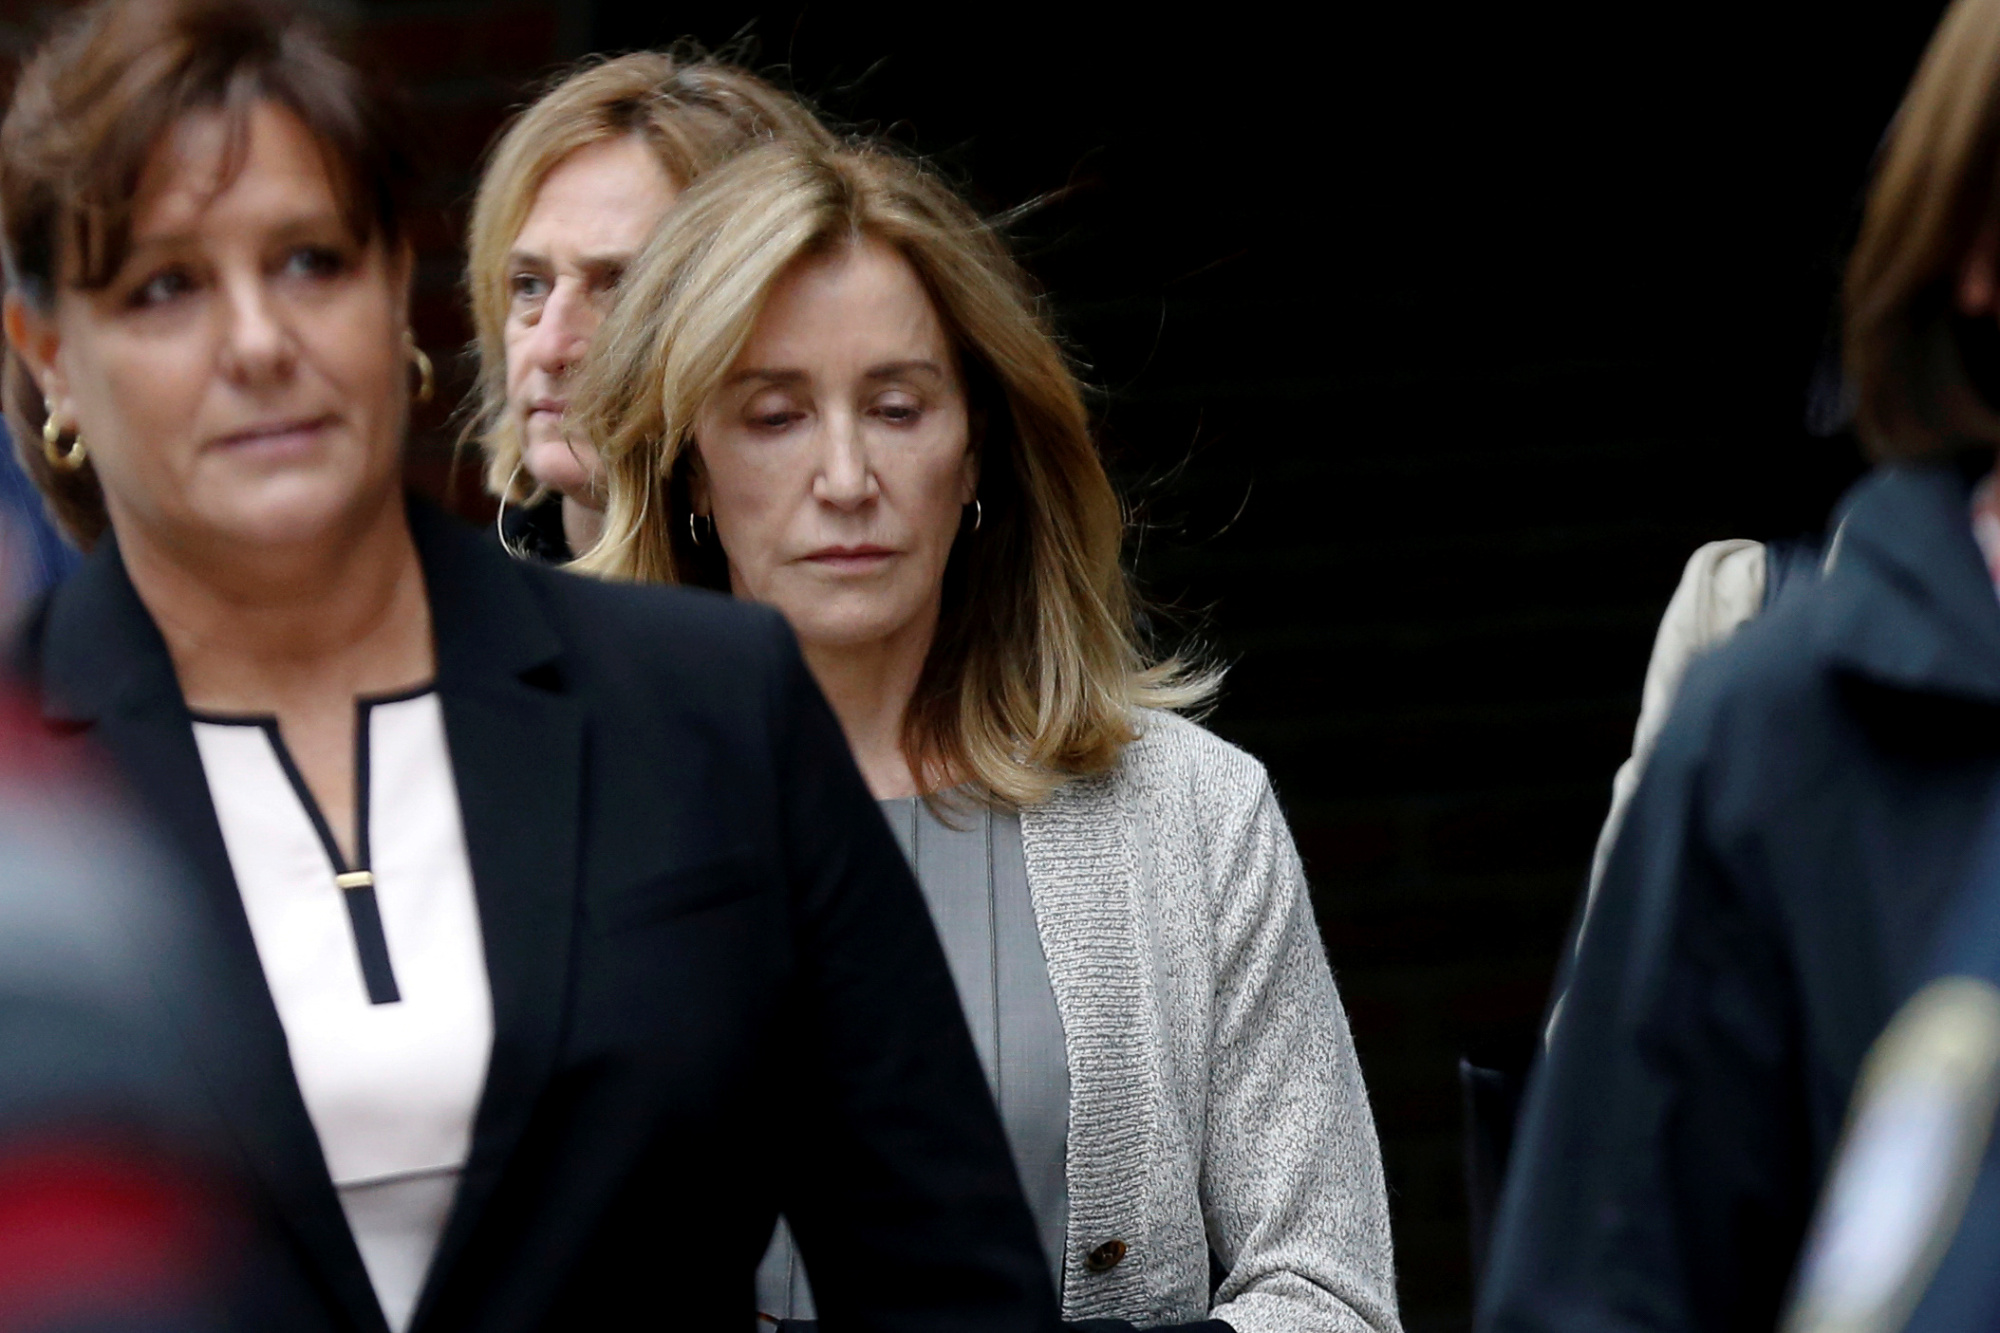 Actor Felicity Huffman leaves the federal courthouse after facing charges in a nationwide college admissions cheating scheme in Boston Monday. | REUTERS